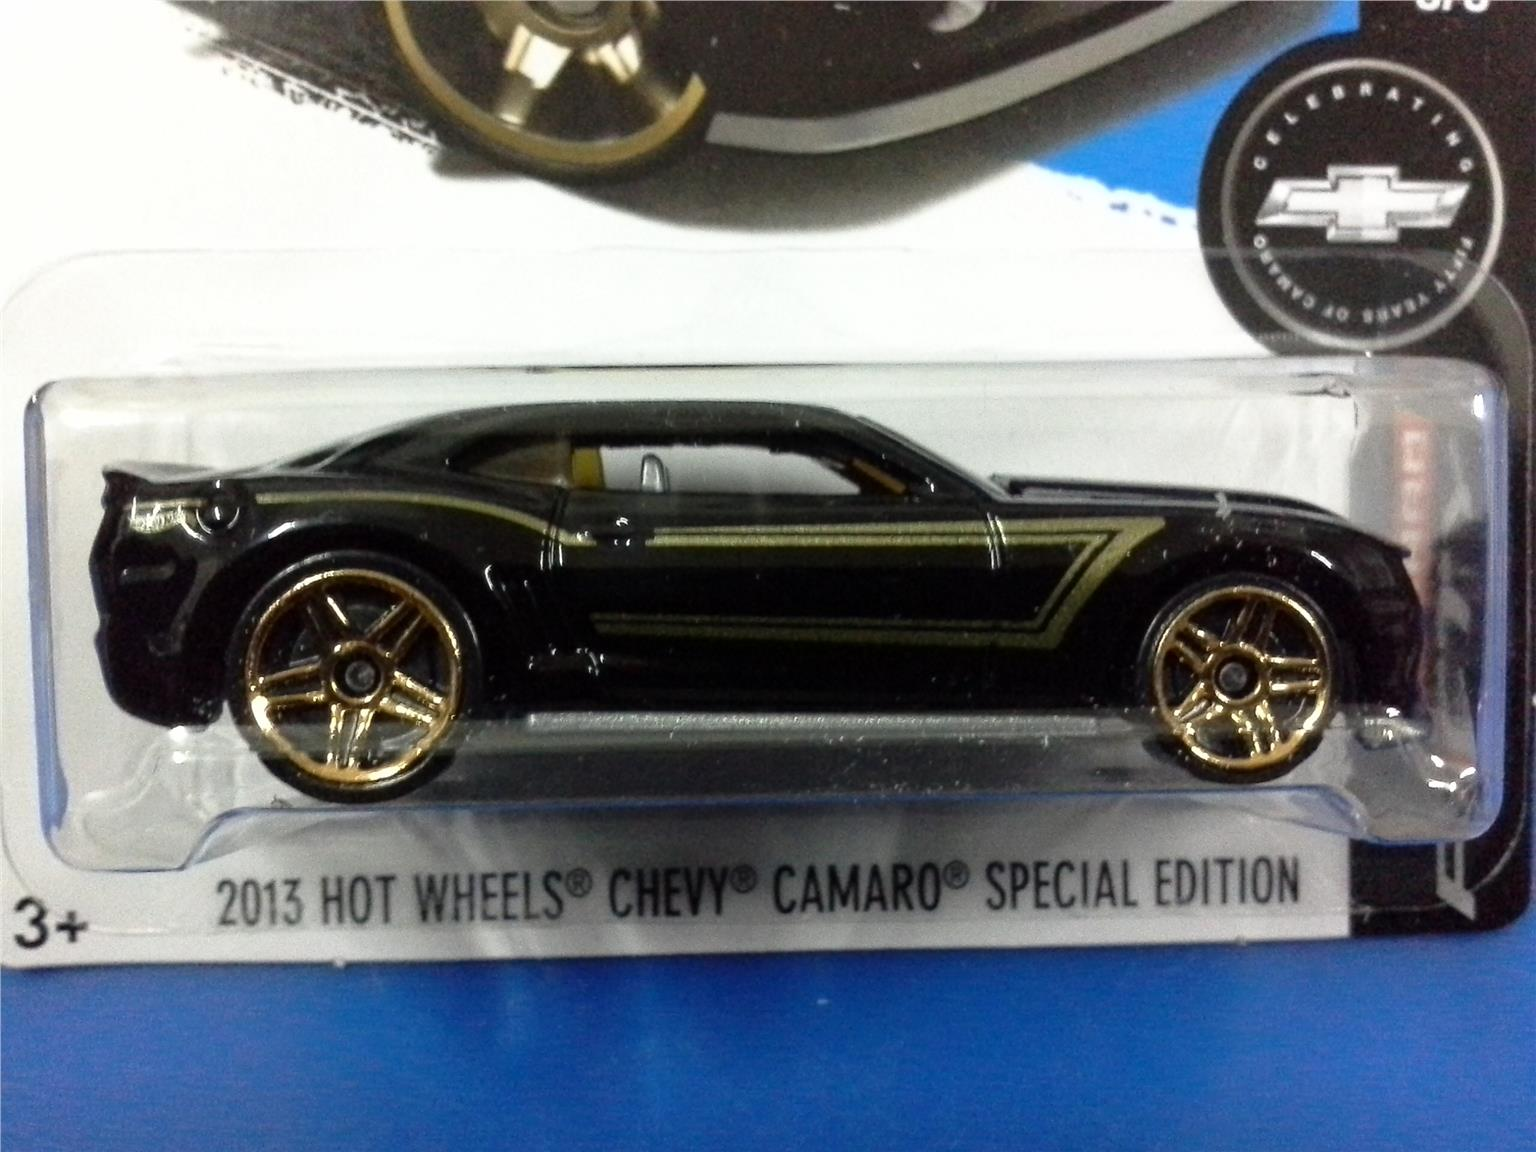 2017 hot wheels 2013 chevy camaro sp end 4 24 2018 4 15 am. Black Bedroom Furniture Sets. Home Design Ideas